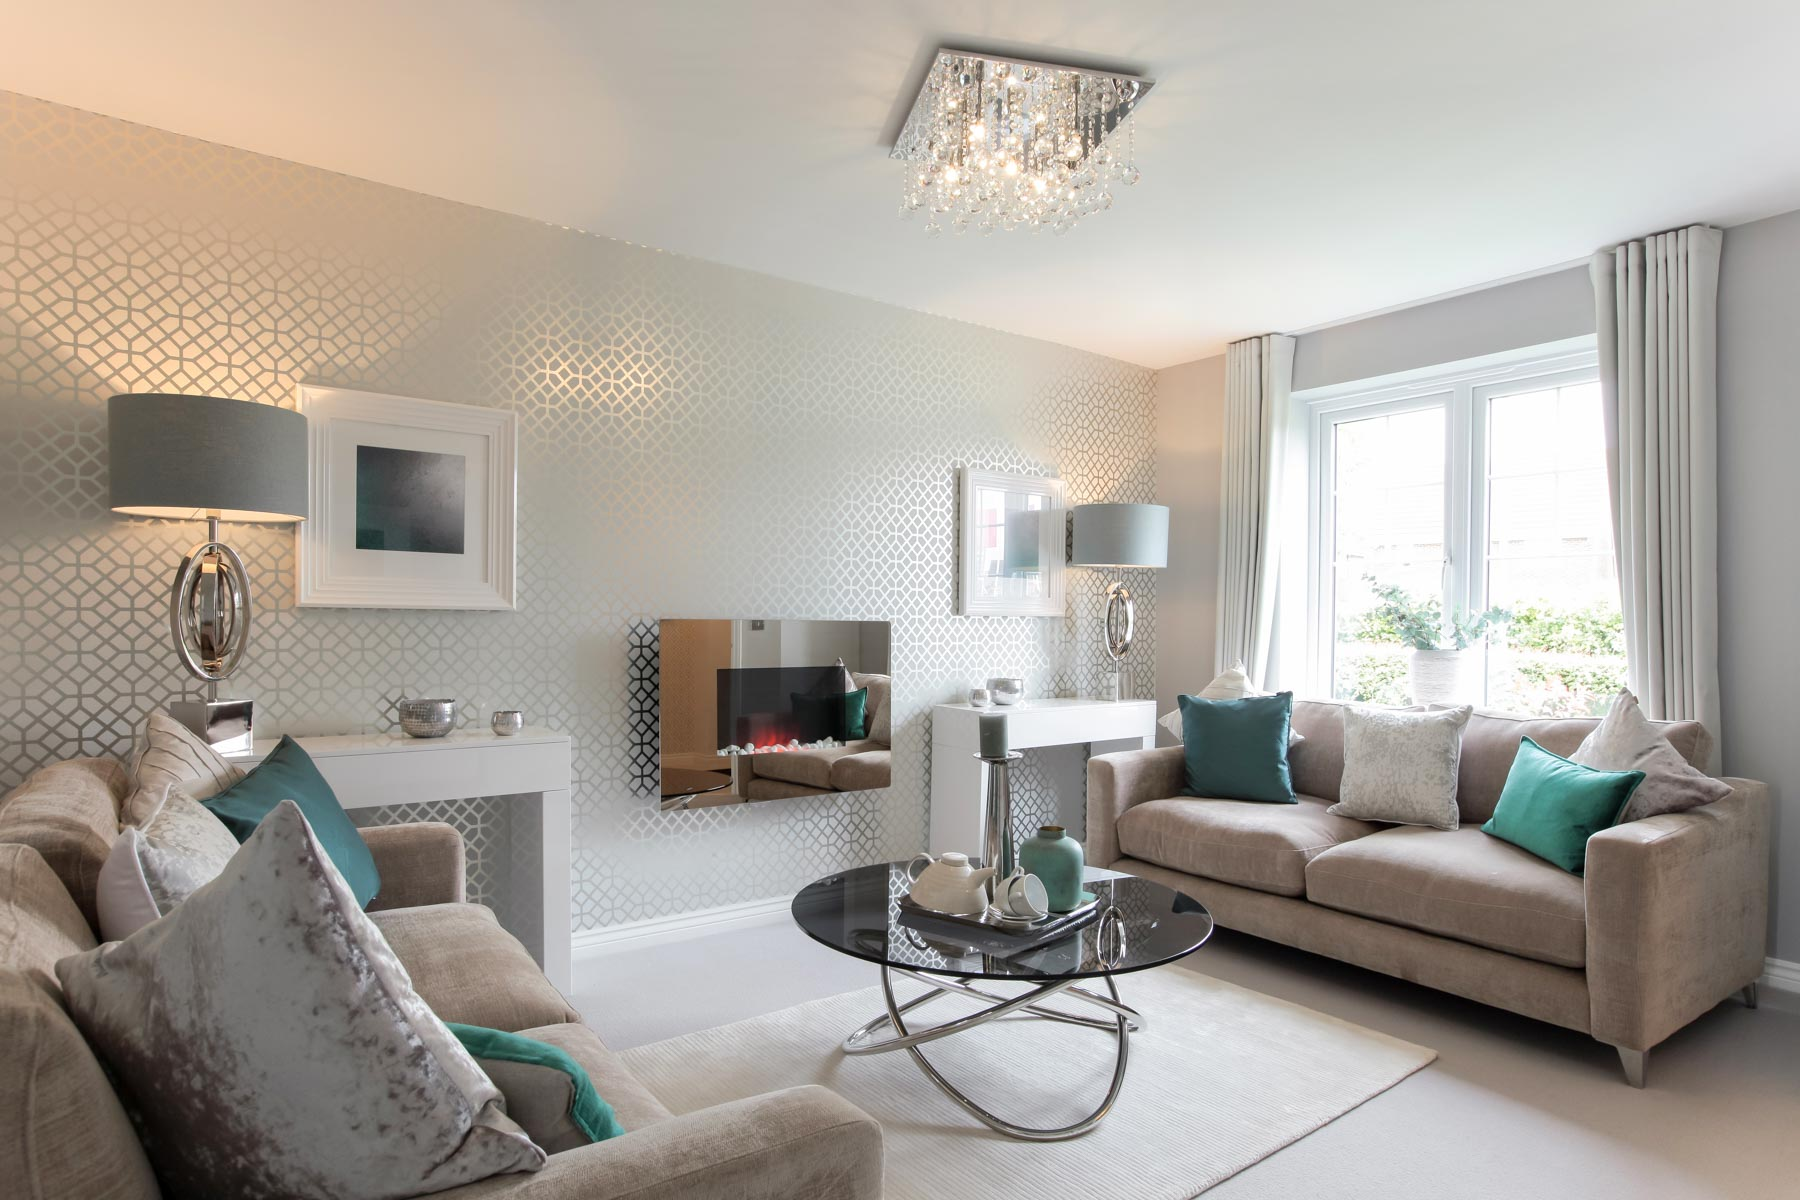 Sadlers view taylor wimpey for Show home living room ideas